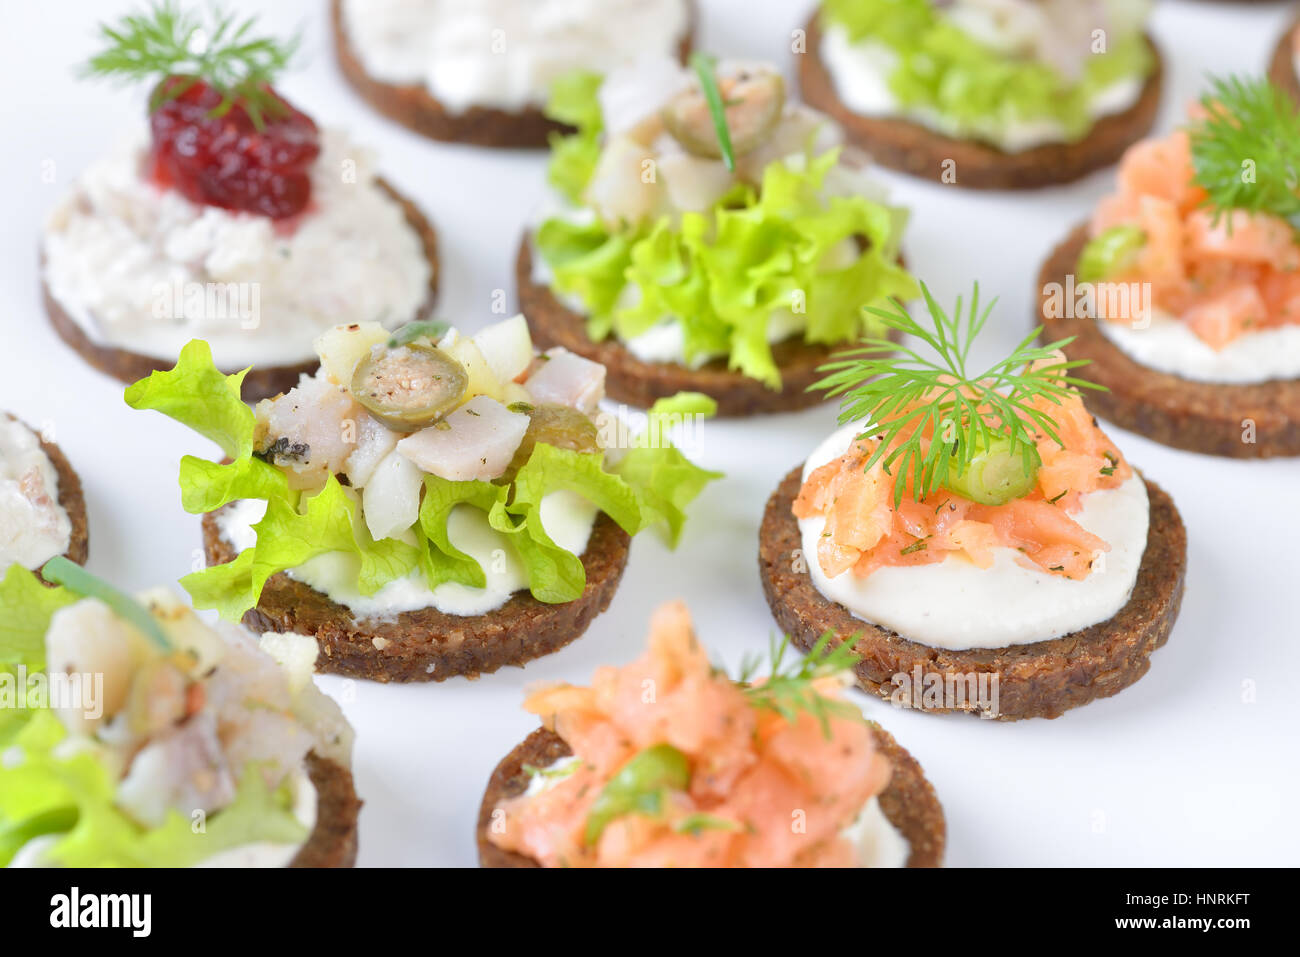 Tasty fish finger food  with smoked salmon tartar on horseradish, trout mousse with cranberries and herring salad - Stock Image